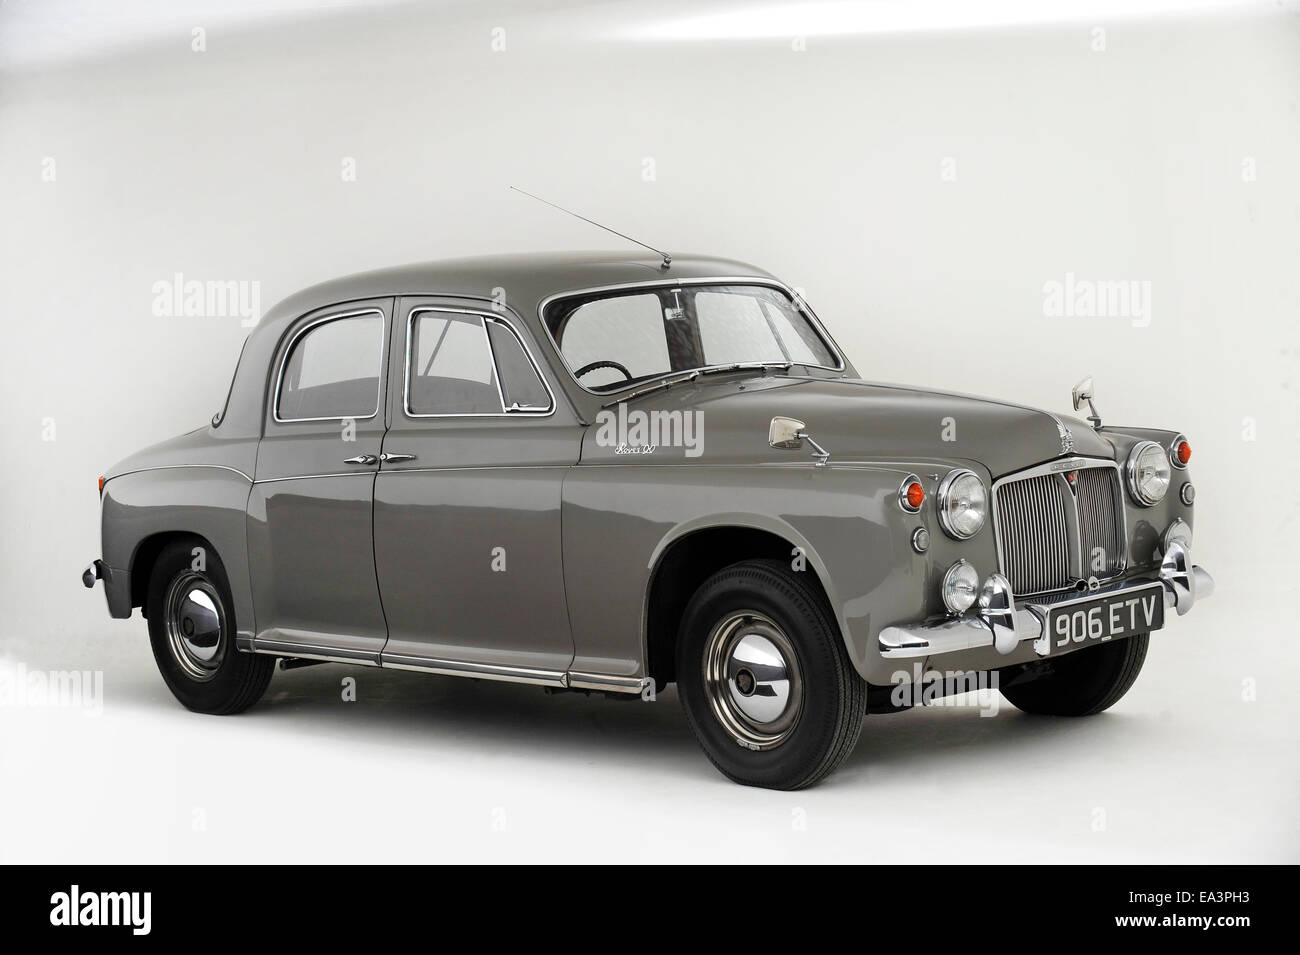 1958 Rover 90 - Stock Image